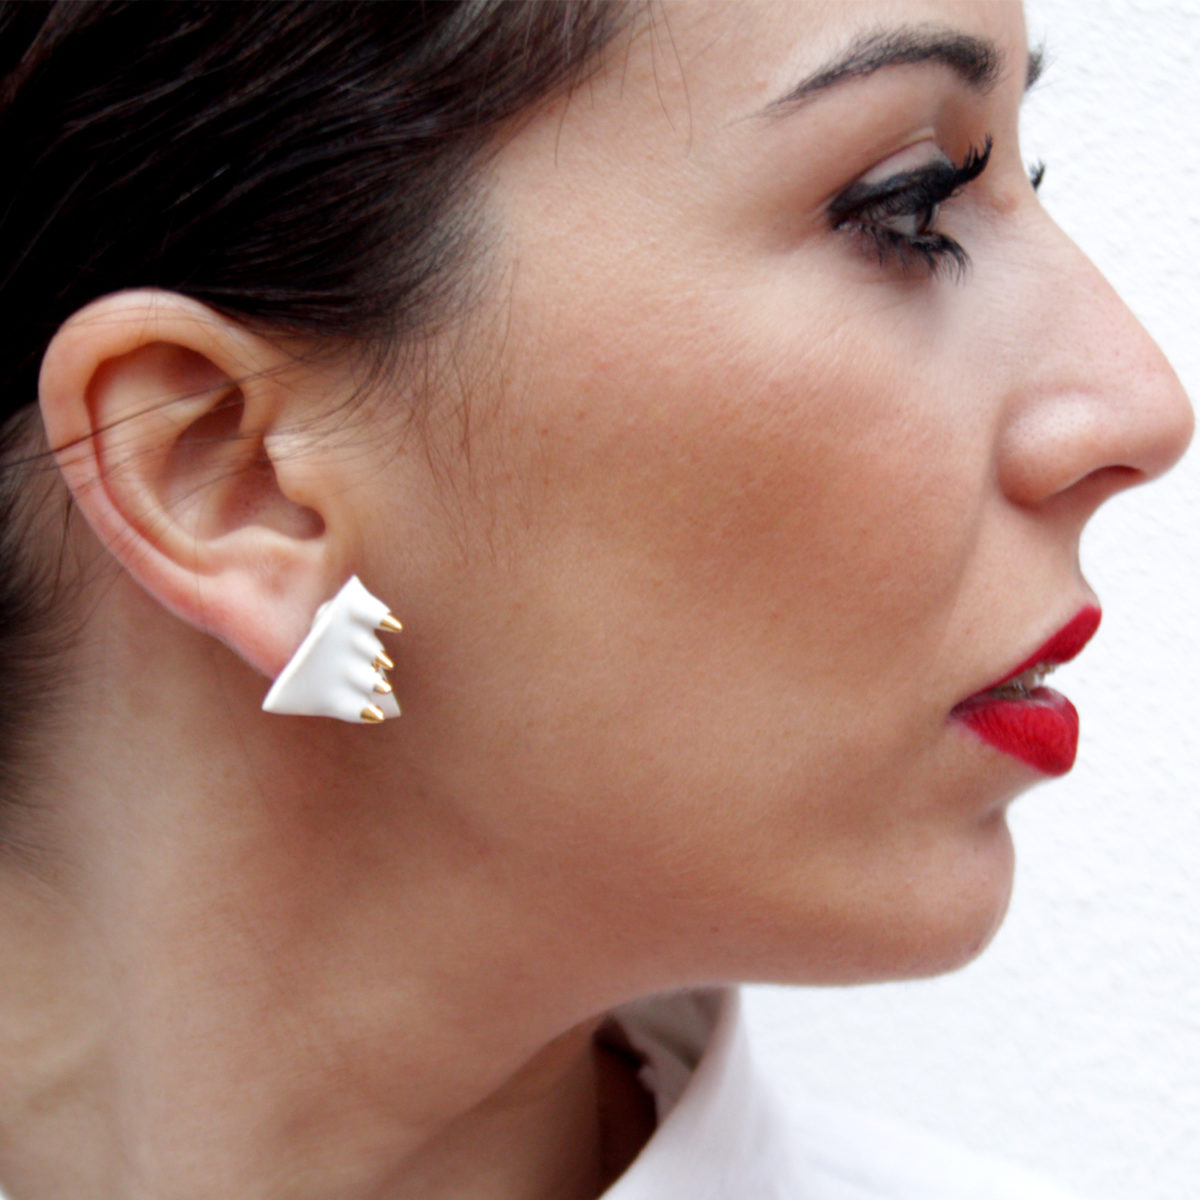 Pendientes de cerámica en triangulo minimalista blanco y oro y fornitura en plata Bowtery cardo pinchos punk originales elegantes. Handmade ceramic earrings triangle minimalist White and gold elegant and exclusive